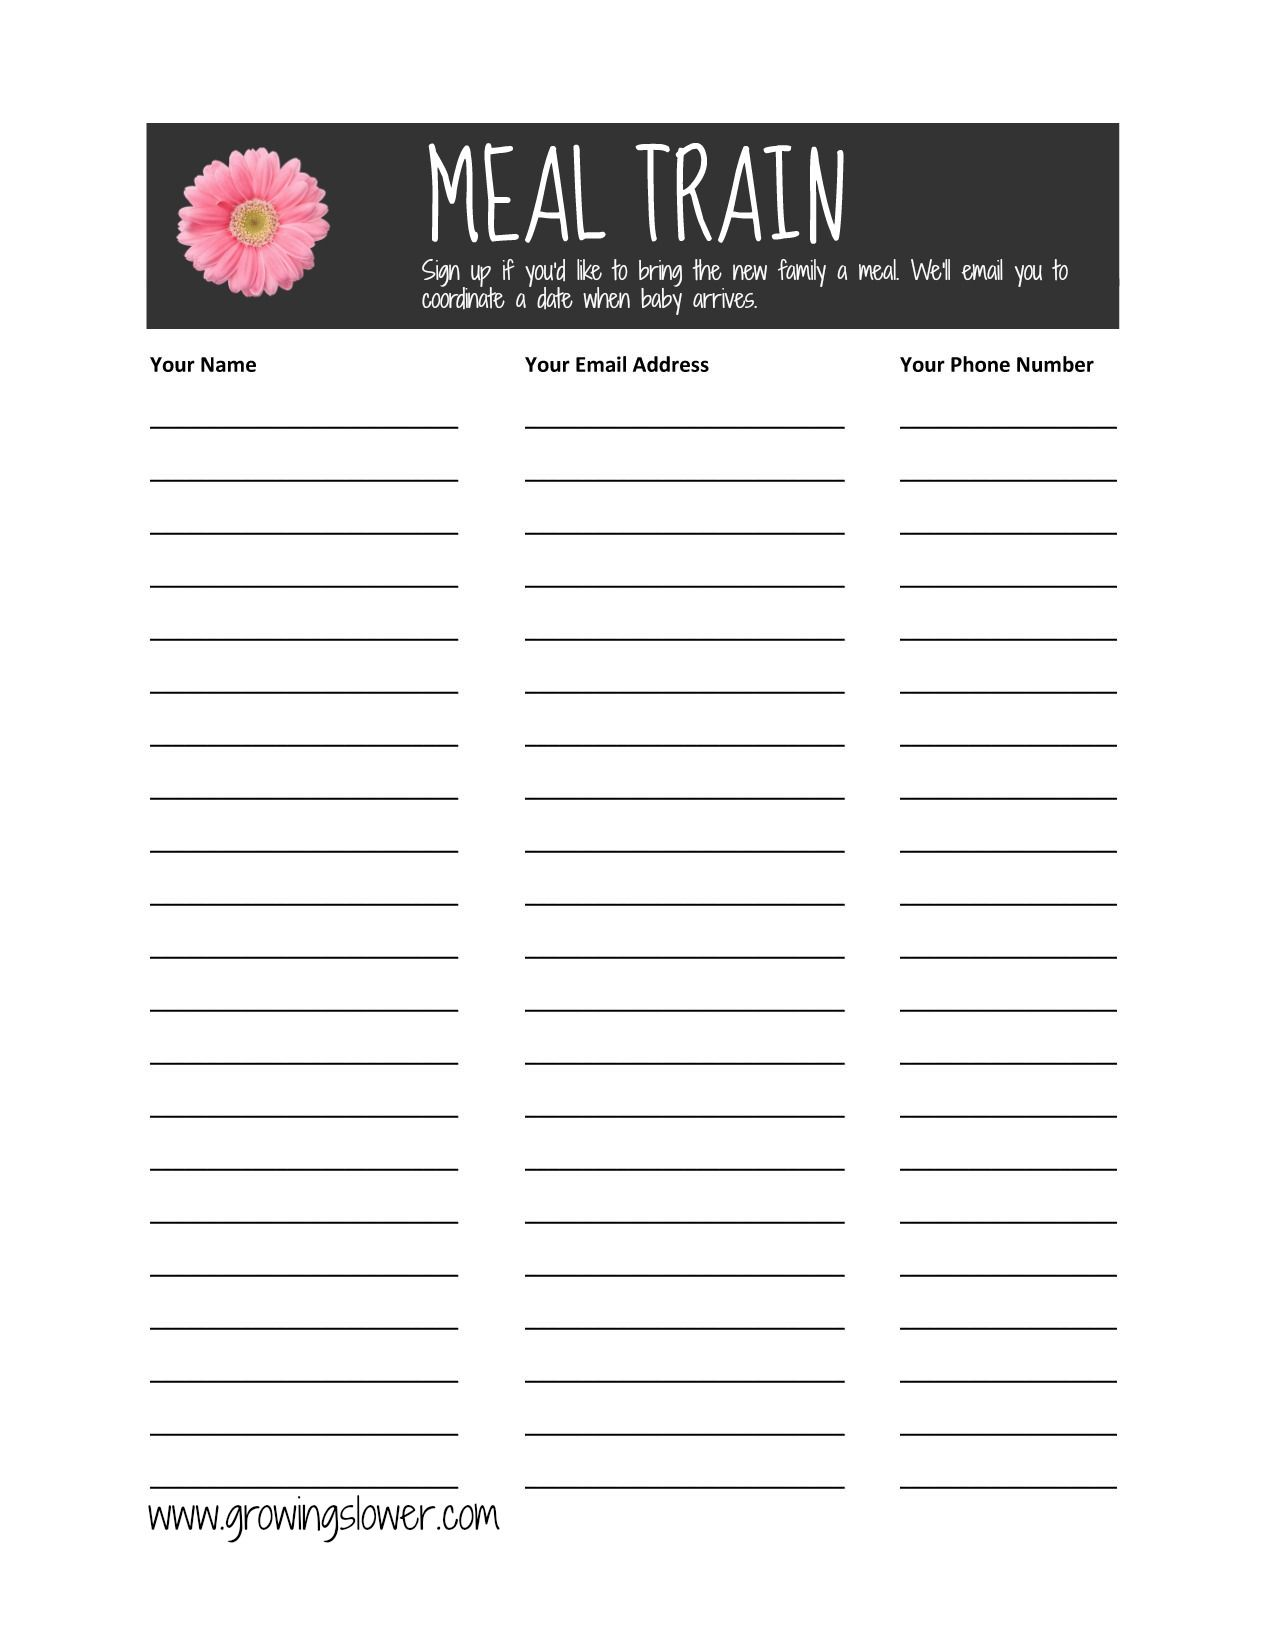 Meal Train Recipes Make Invoice Signup